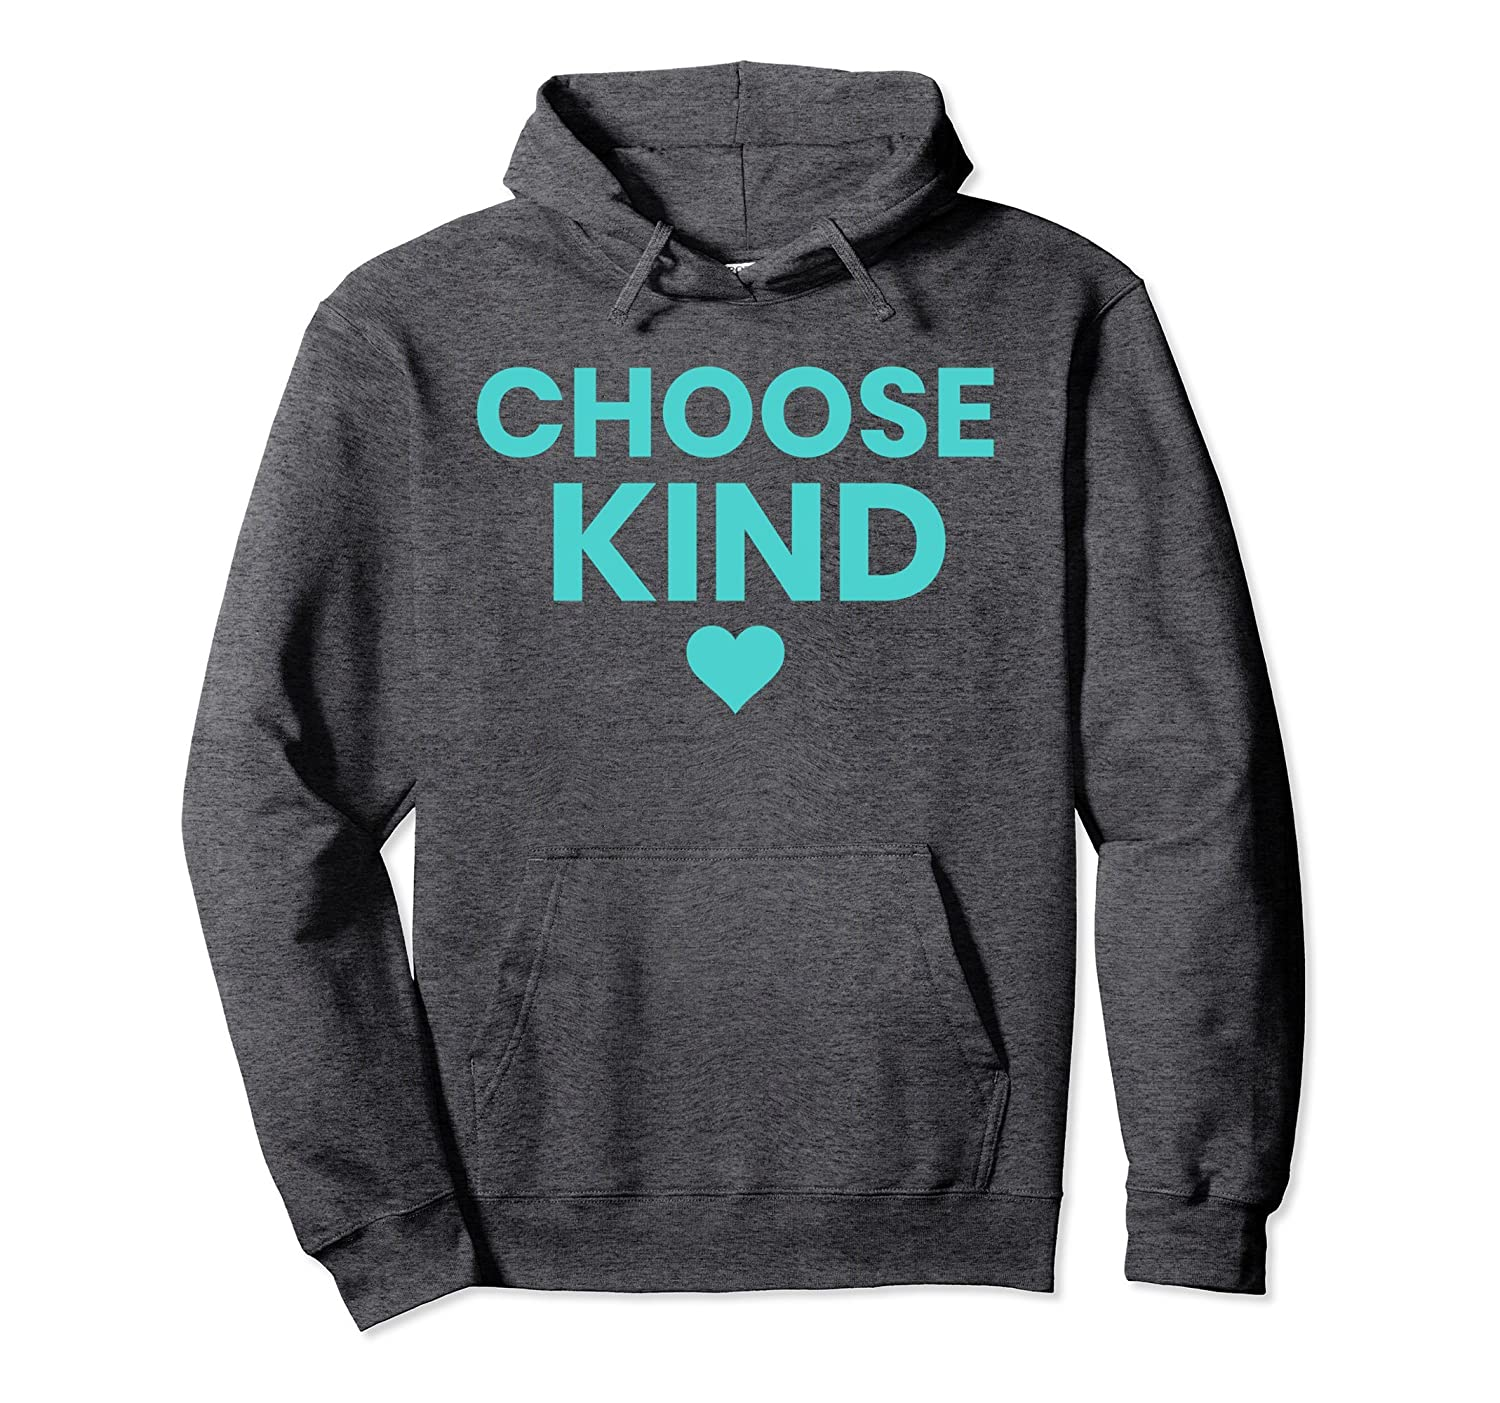 07805110739 Choose kind anti bullying simple teal color text hoodie-alottee gift ...